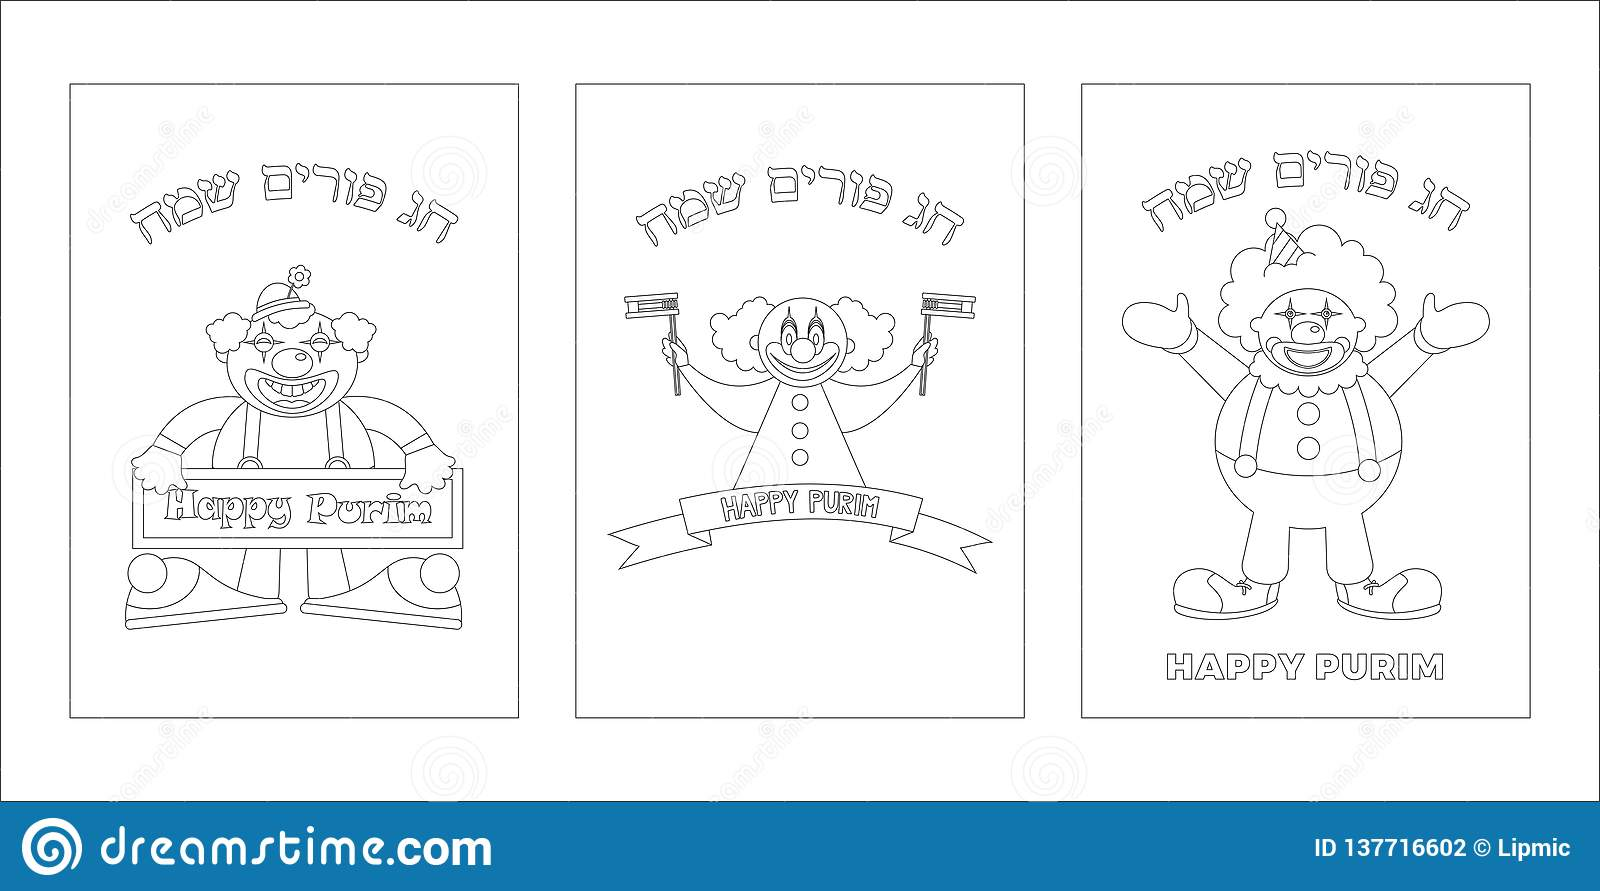 Purim Coloring Page With Funny Clowns Can Be Used For Kids Fun Activity Educate And Learning Vector Happy Purim Stock Vector Illustration Of Clowns Isolated 137716602